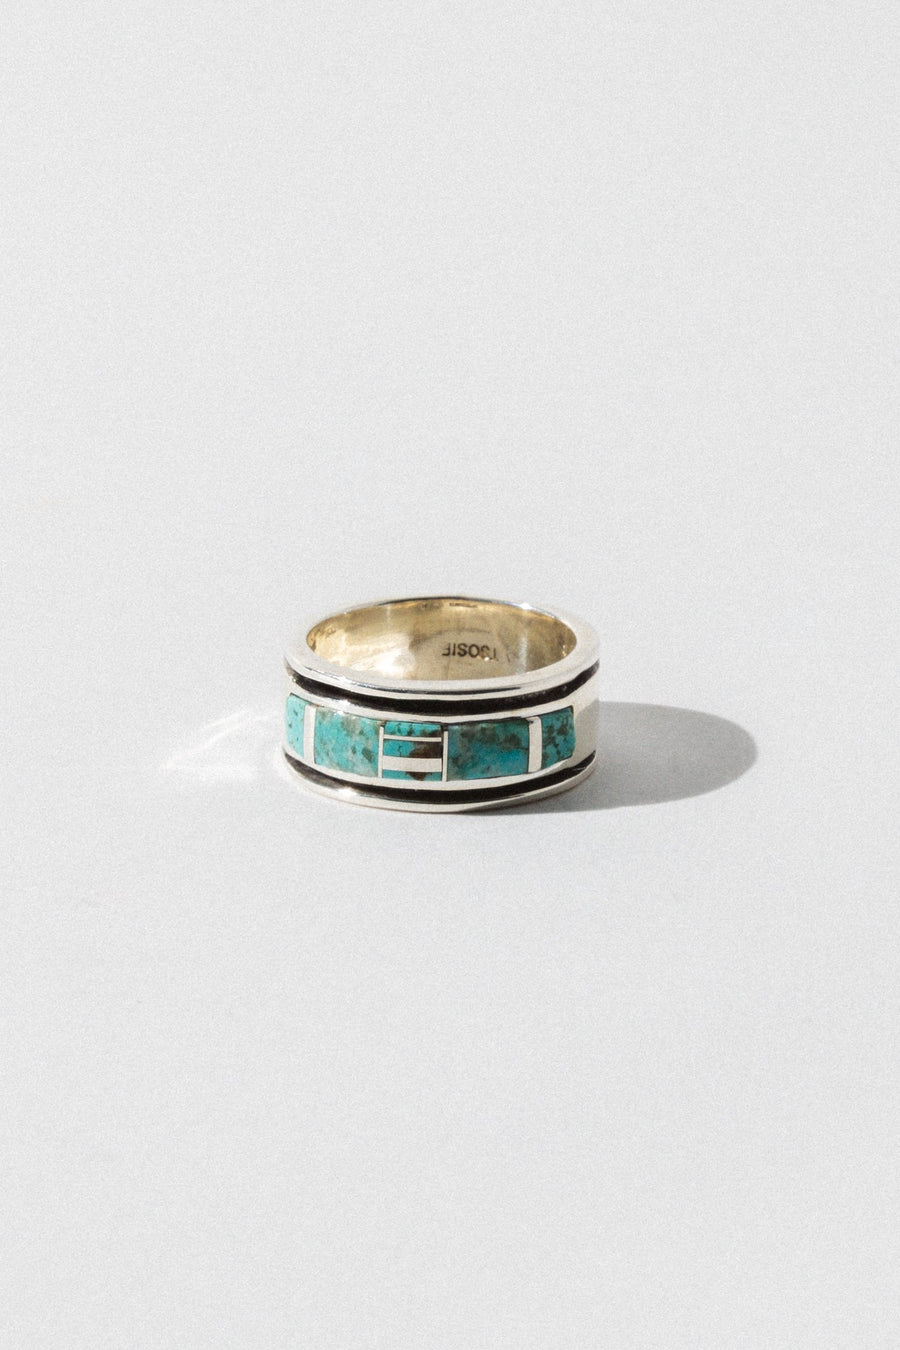 omar Native American Jewelry US 13 / Sterling Silver Mens Tribal Turquoise Ring